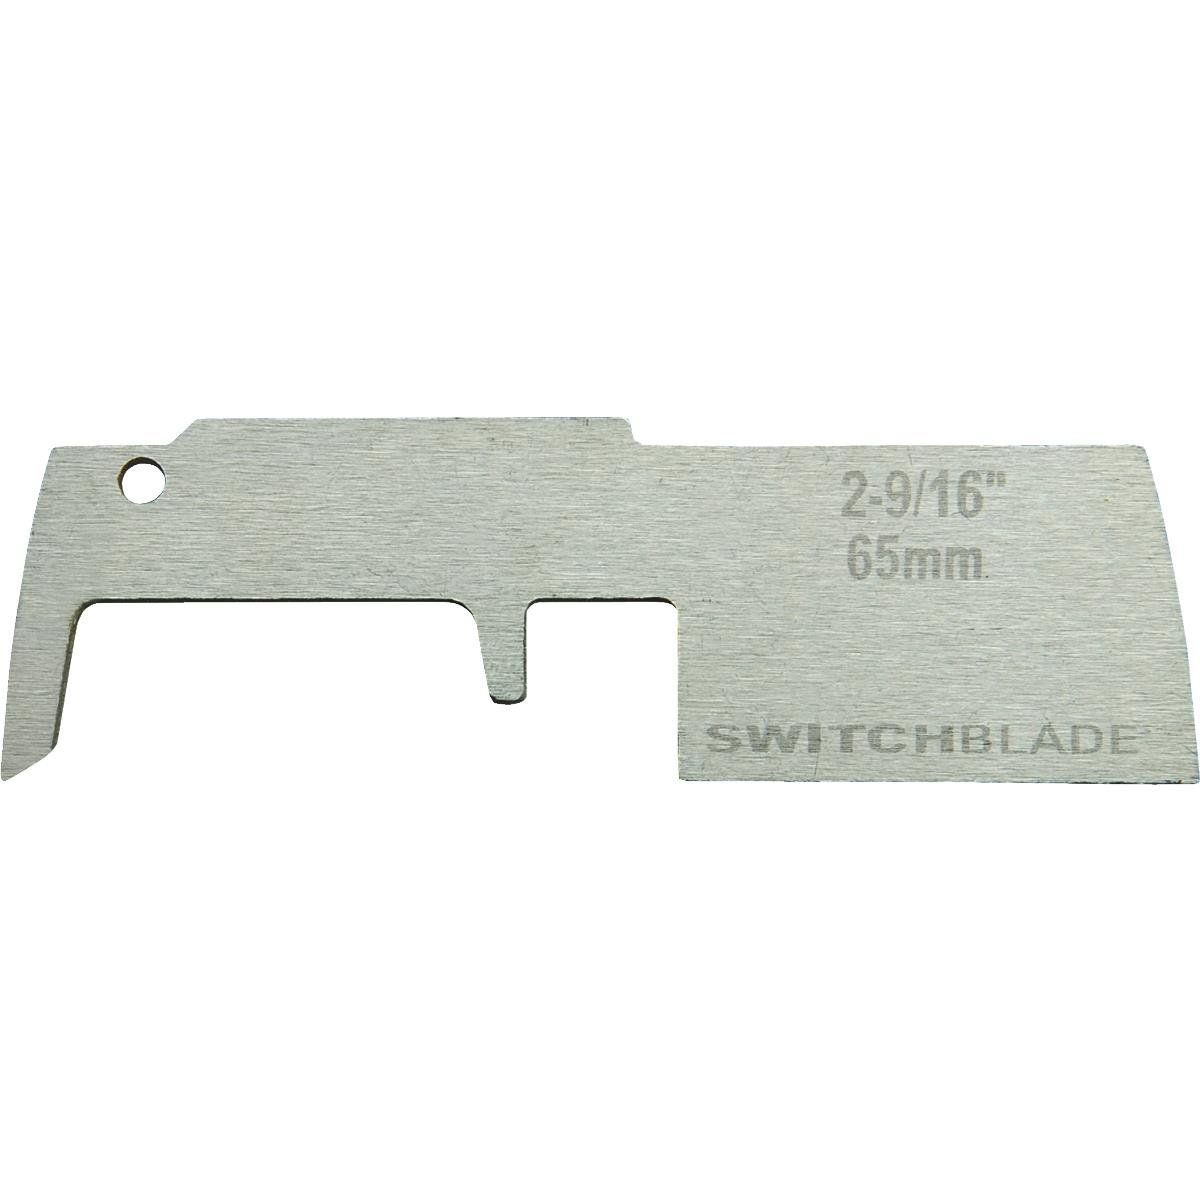 Milwaukee® SWITCHBLADE™ 48-25-5420 Replacement Blade, For Use With Switchblade Bits